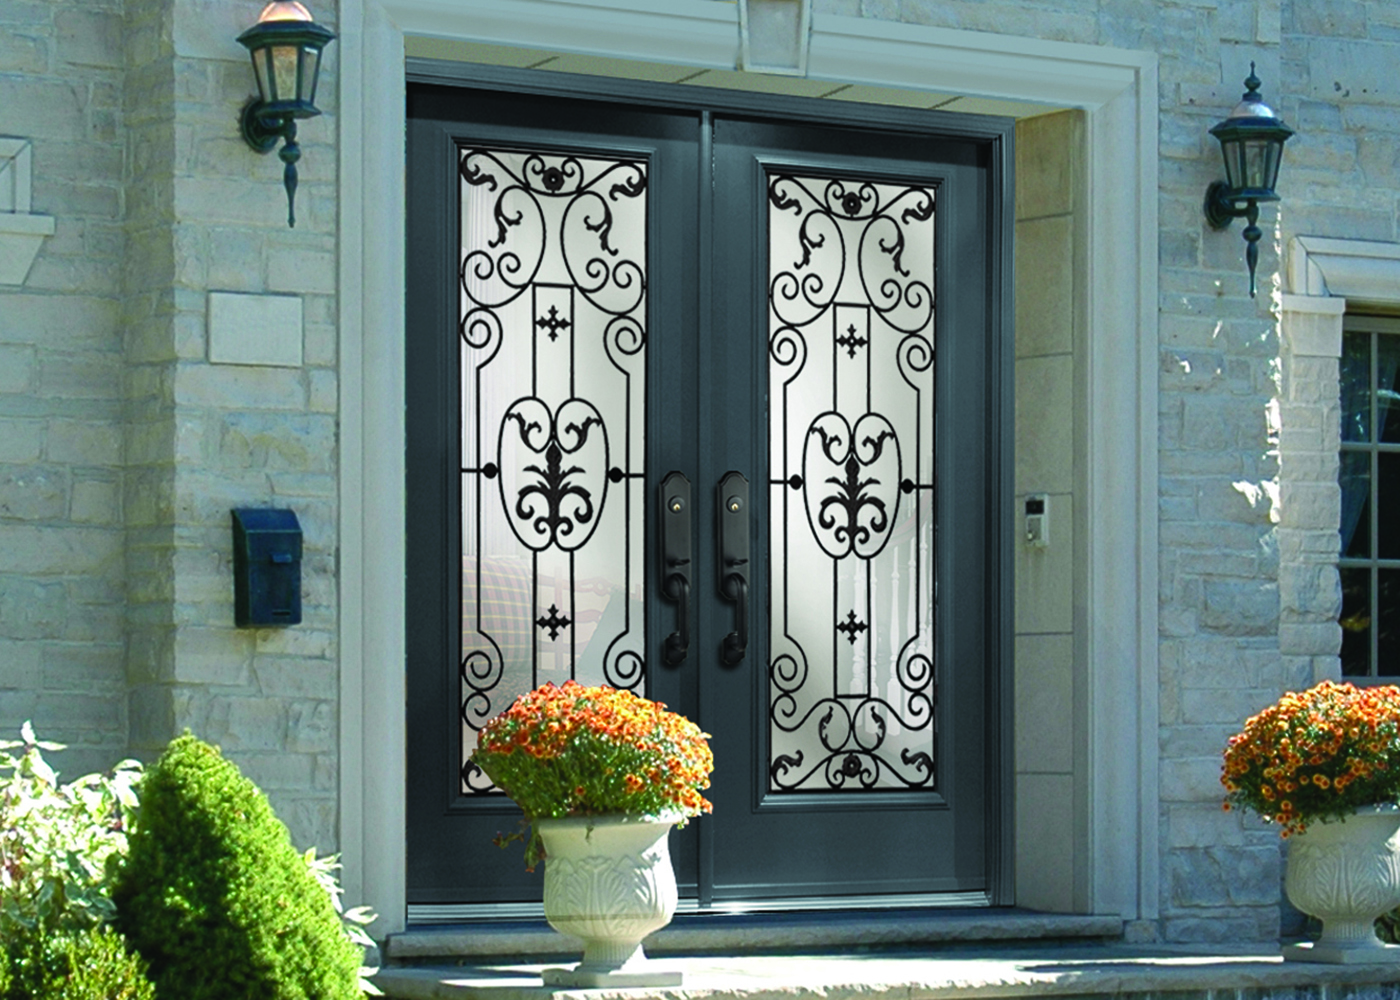 1000 #9E602D Door Steel Entry Custom Wrought Iron Rome Glass save image Iron And Glass Entry Doors 40971400